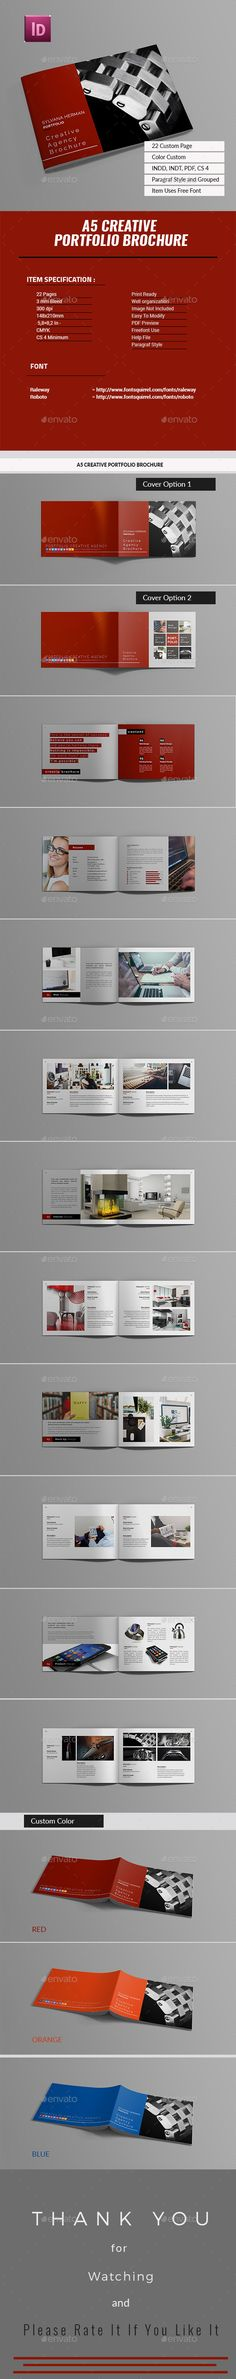 A5 Portfolio Creative Agency Brochure — InDesign INDD #simple #photographer • Available here → https://graphicriver.net/item/a5-portfolio-creative-agency-brochure/18297994?ref=pxcr